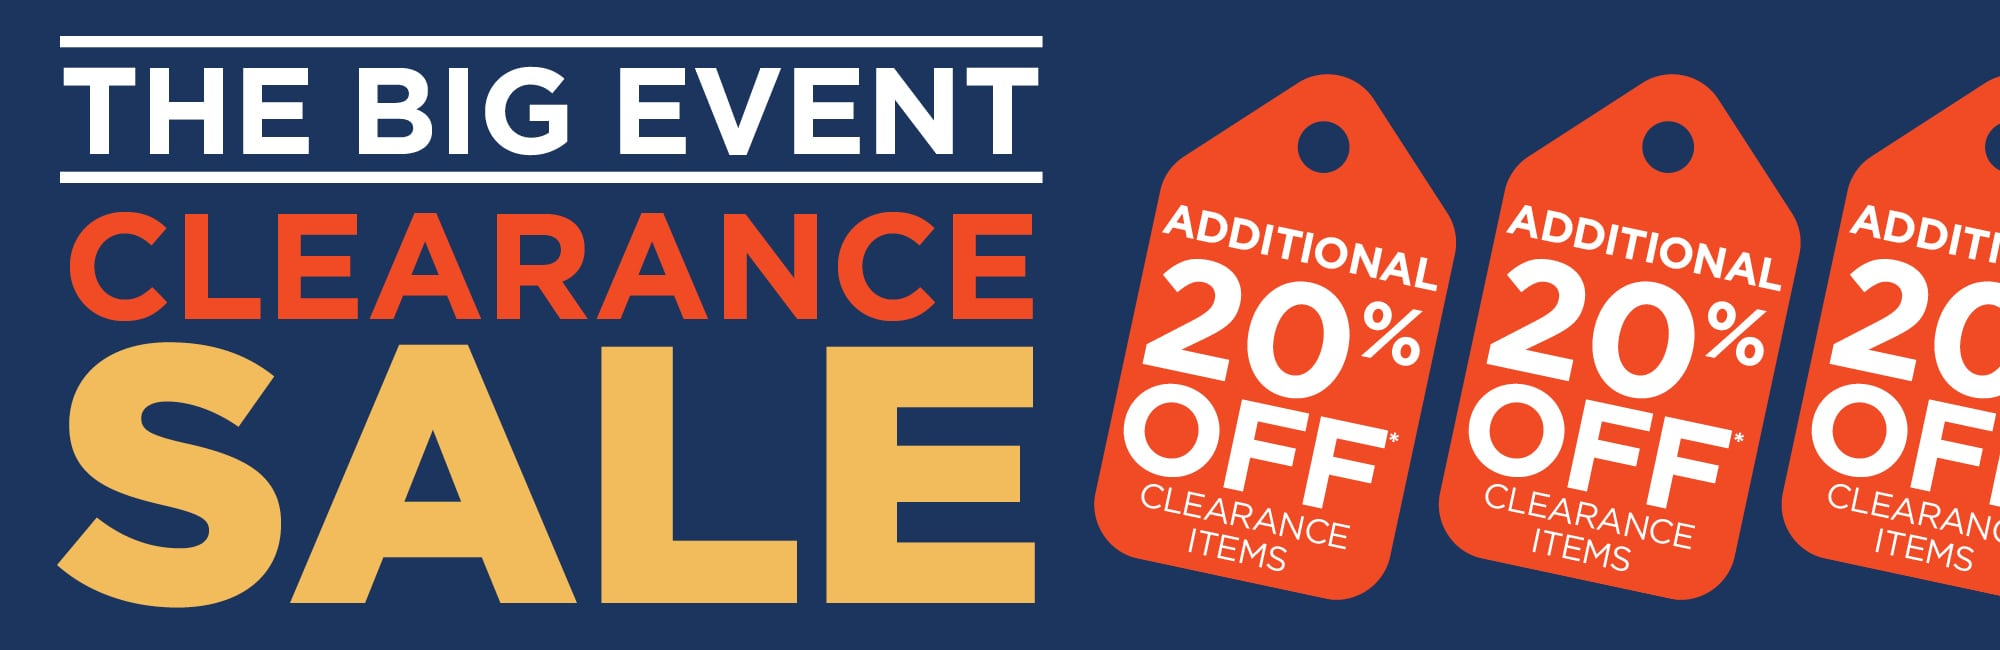 Shop The Big Event: Clearance SAVE 20% Off All Clearance!